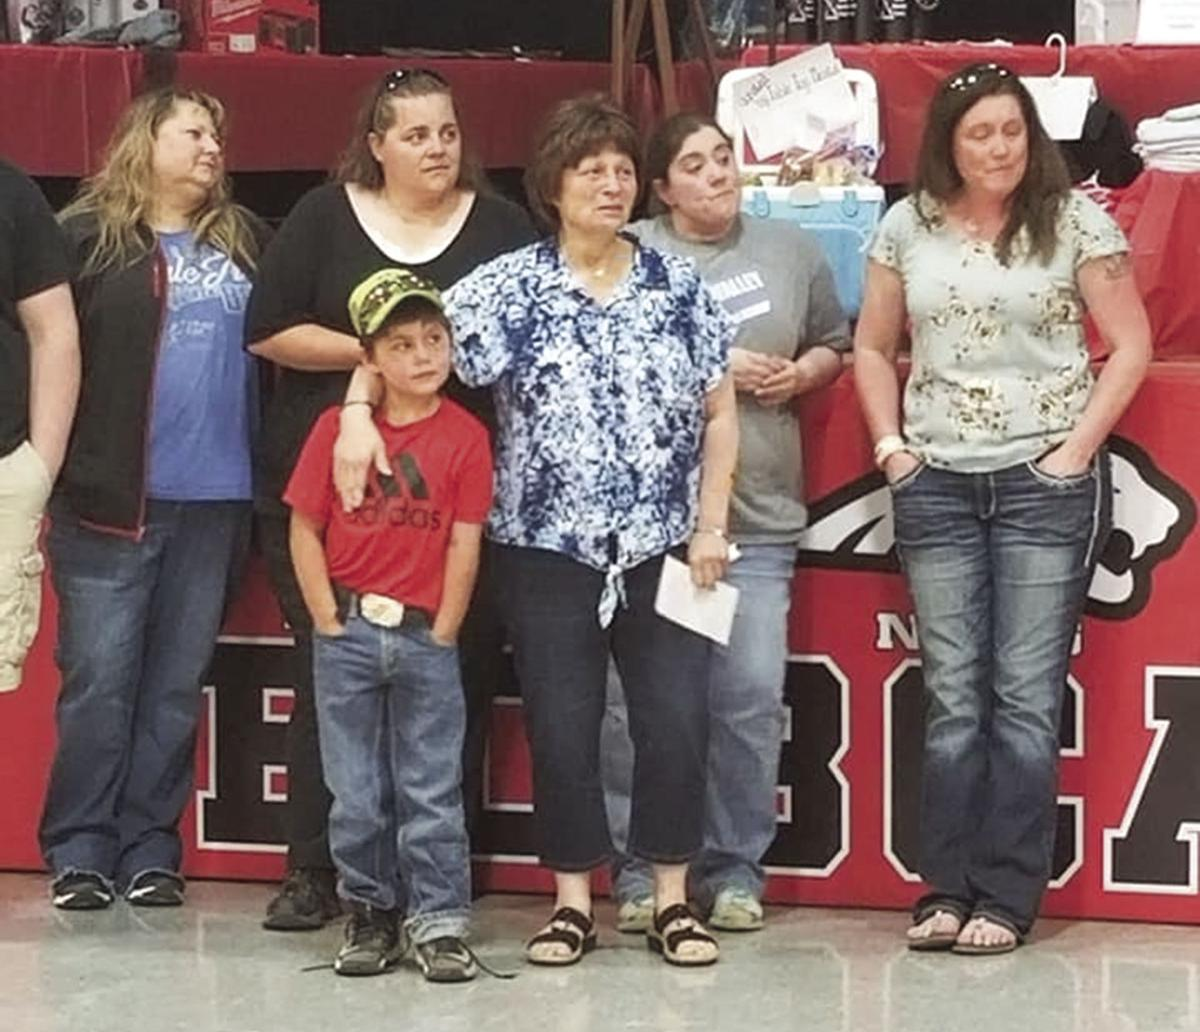 $11K Raised for Bobcats Beating Cancer